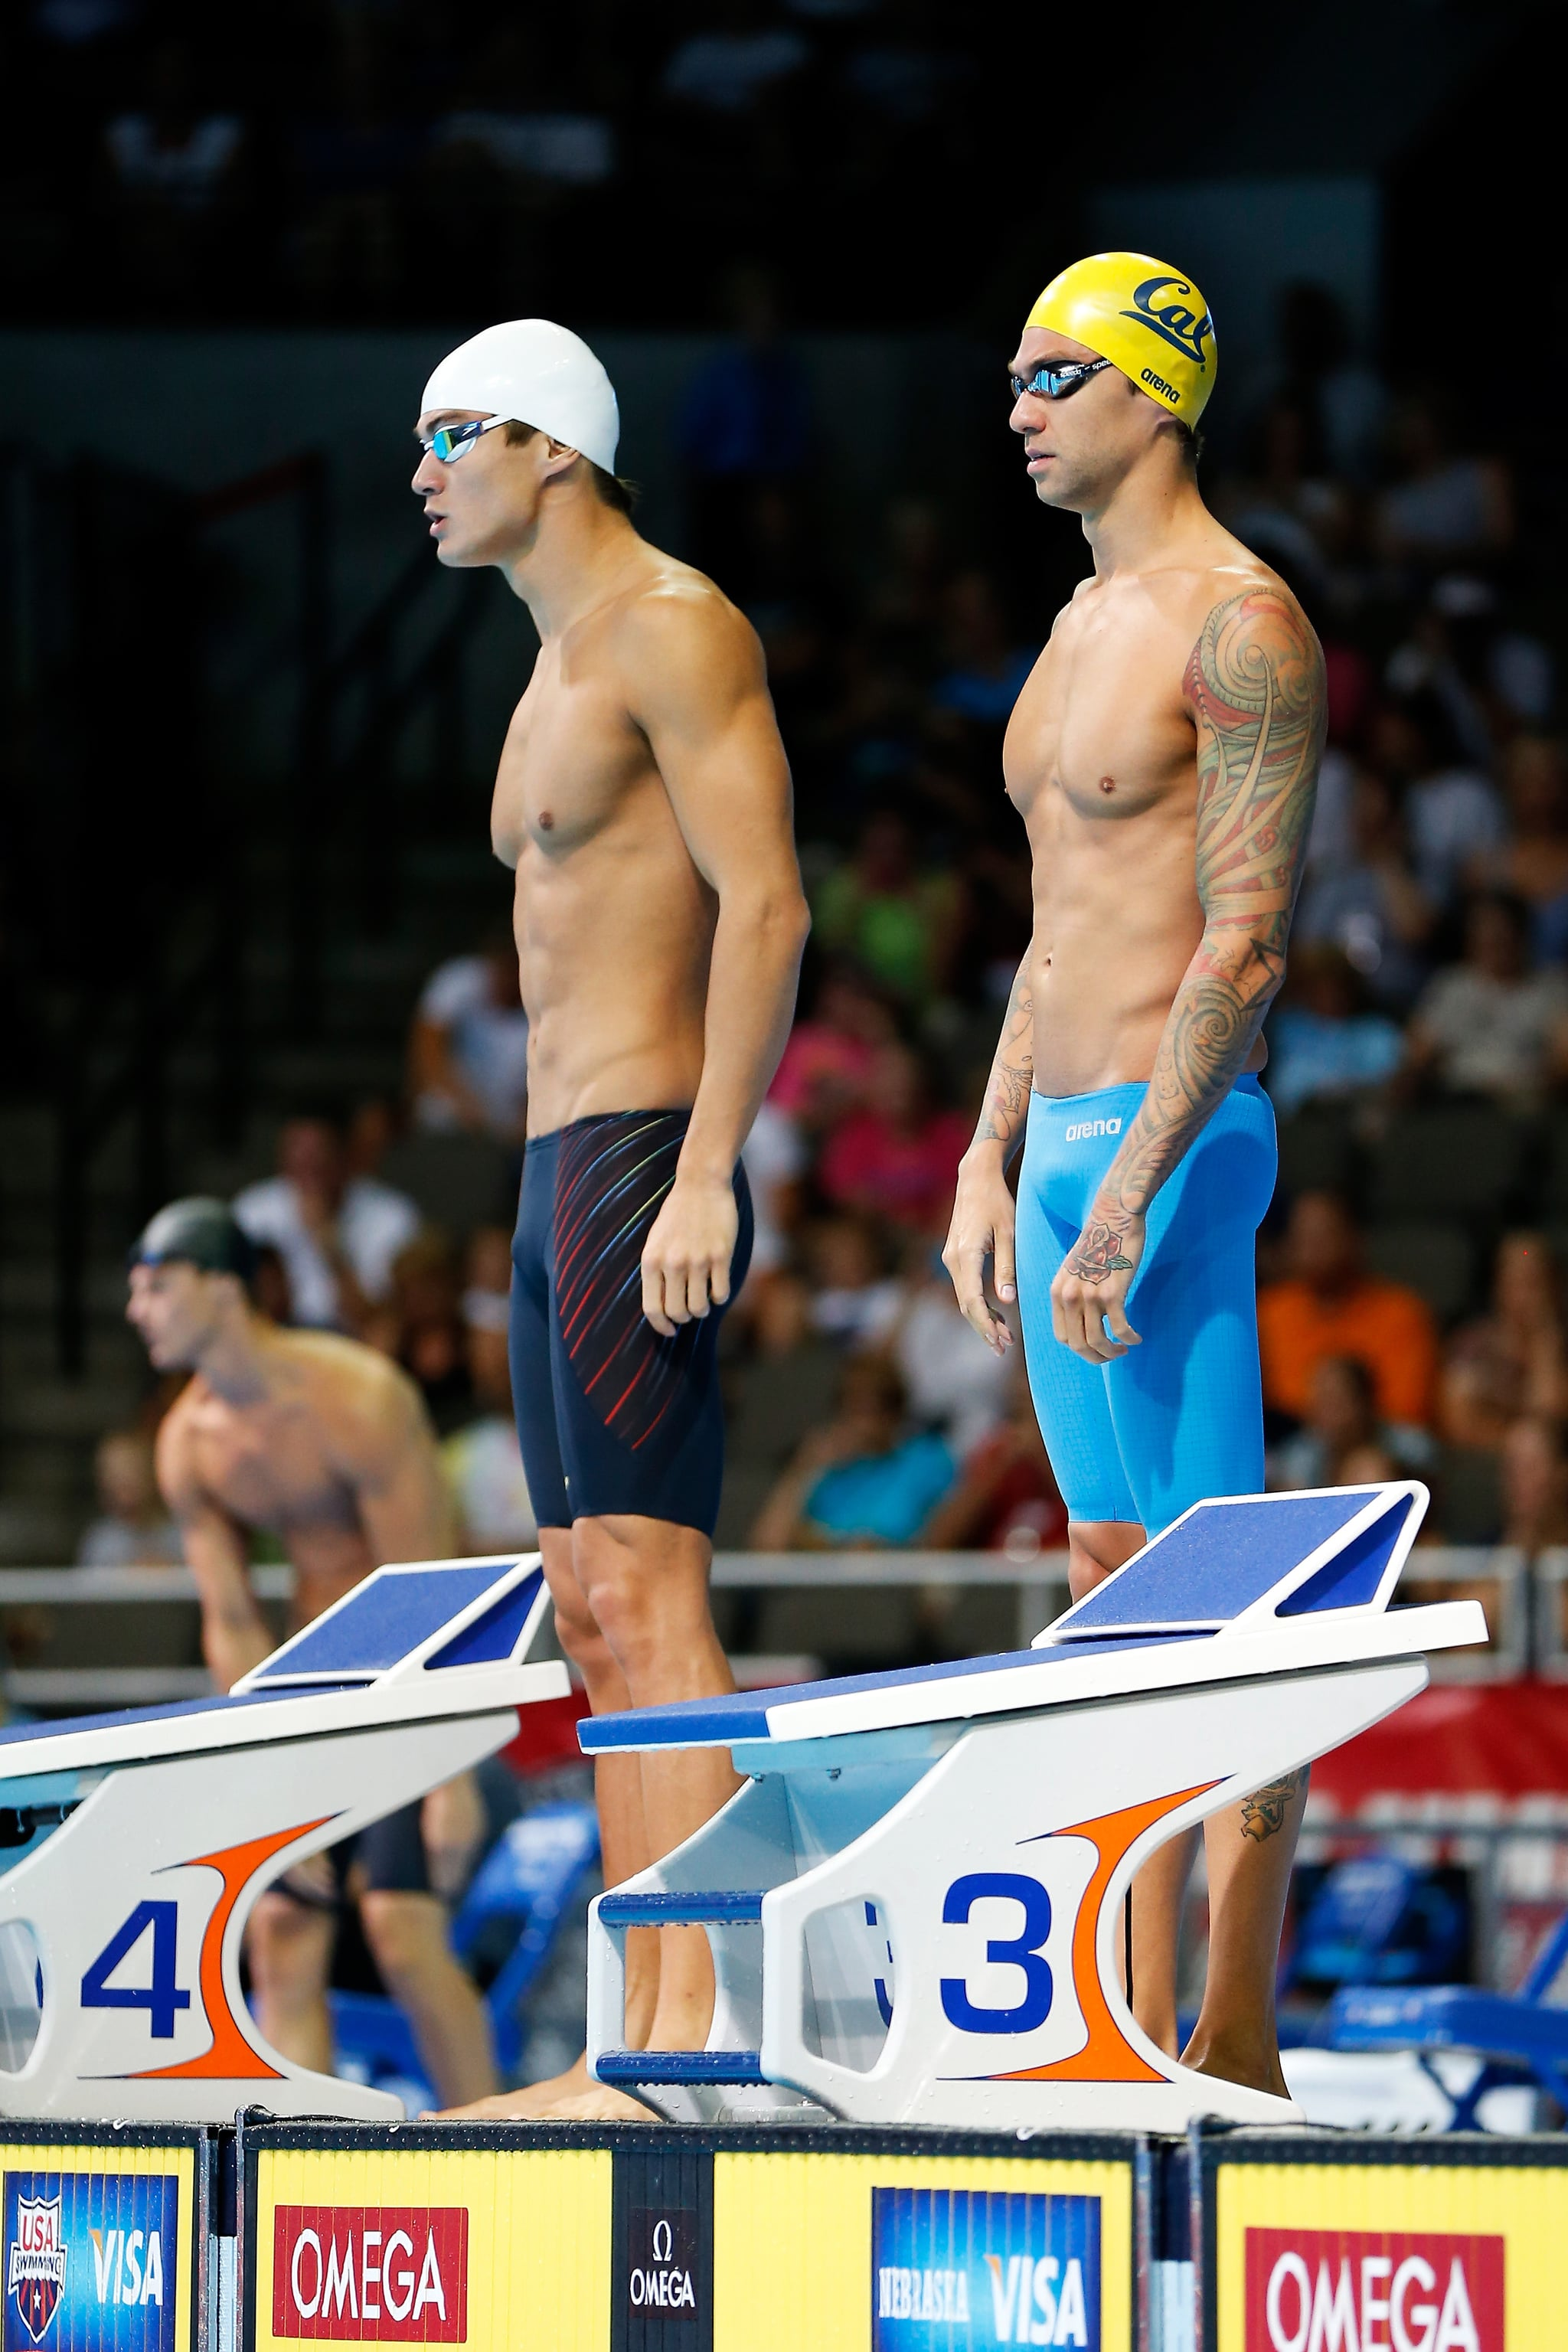 Anthony Ervin nathan adrian